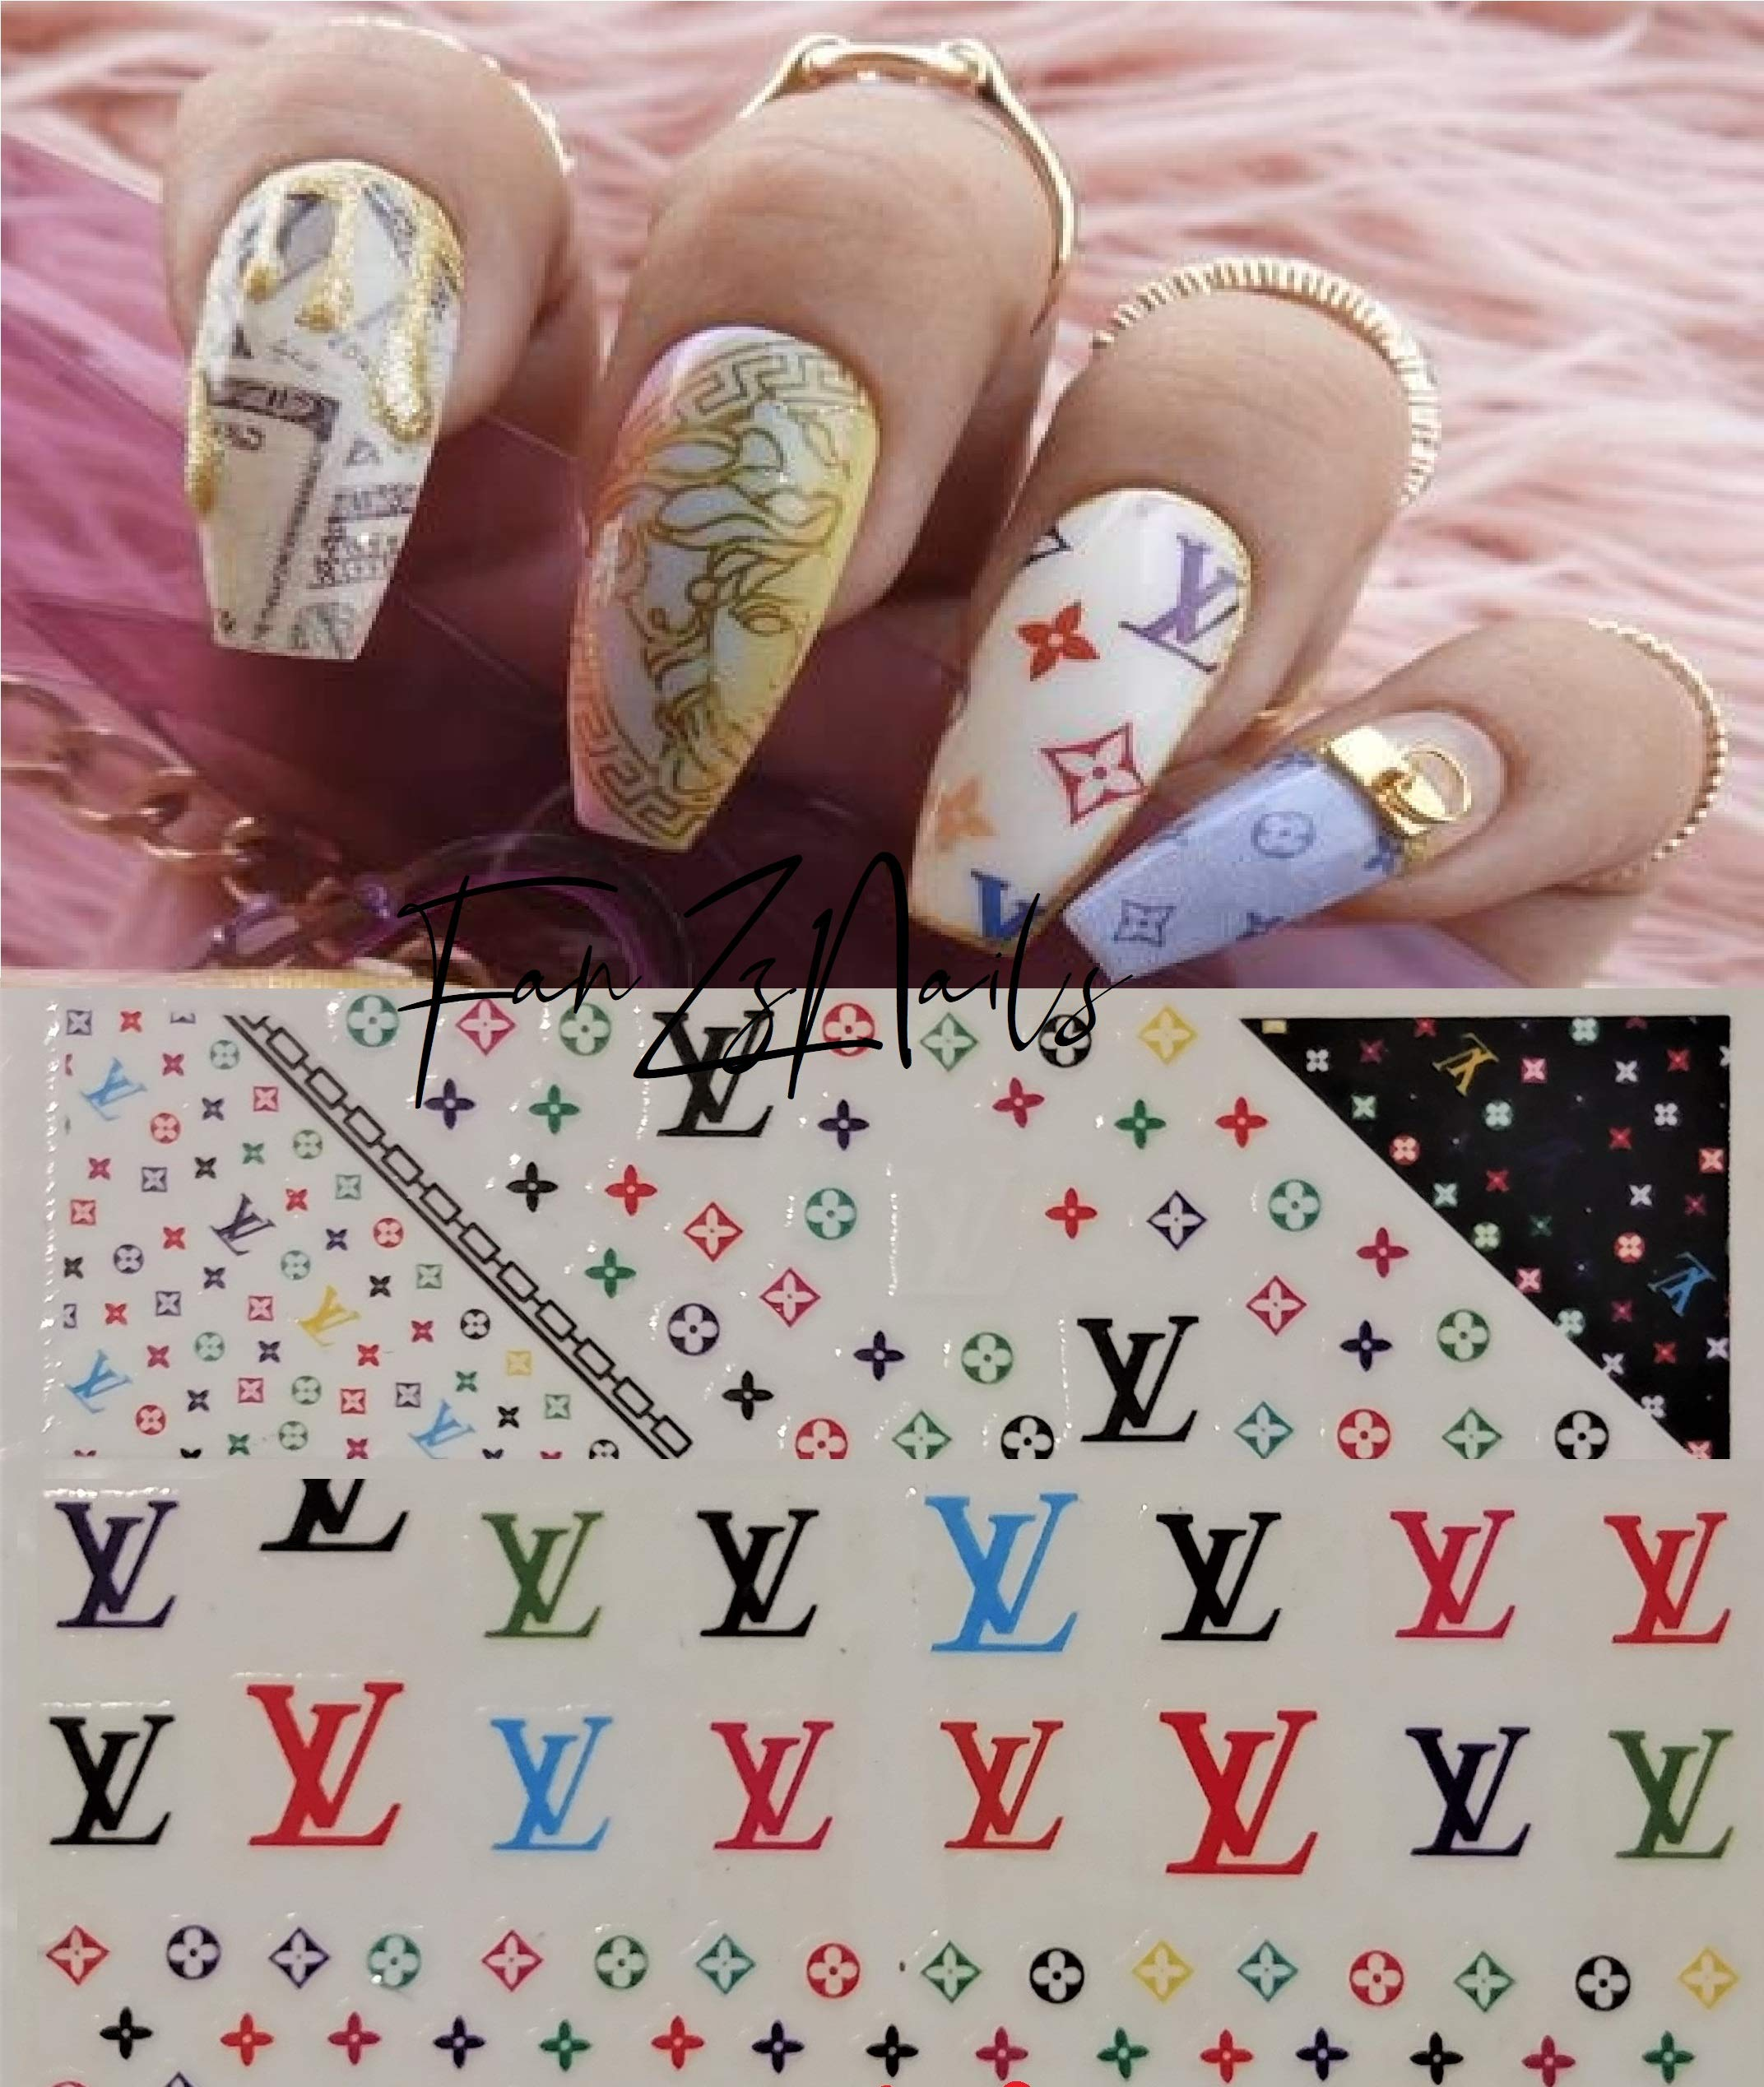 Go4Nails 2019 LV Inspired Colorful Nail Art Stickers Self Adhesive Decals DIY by Go4Nails